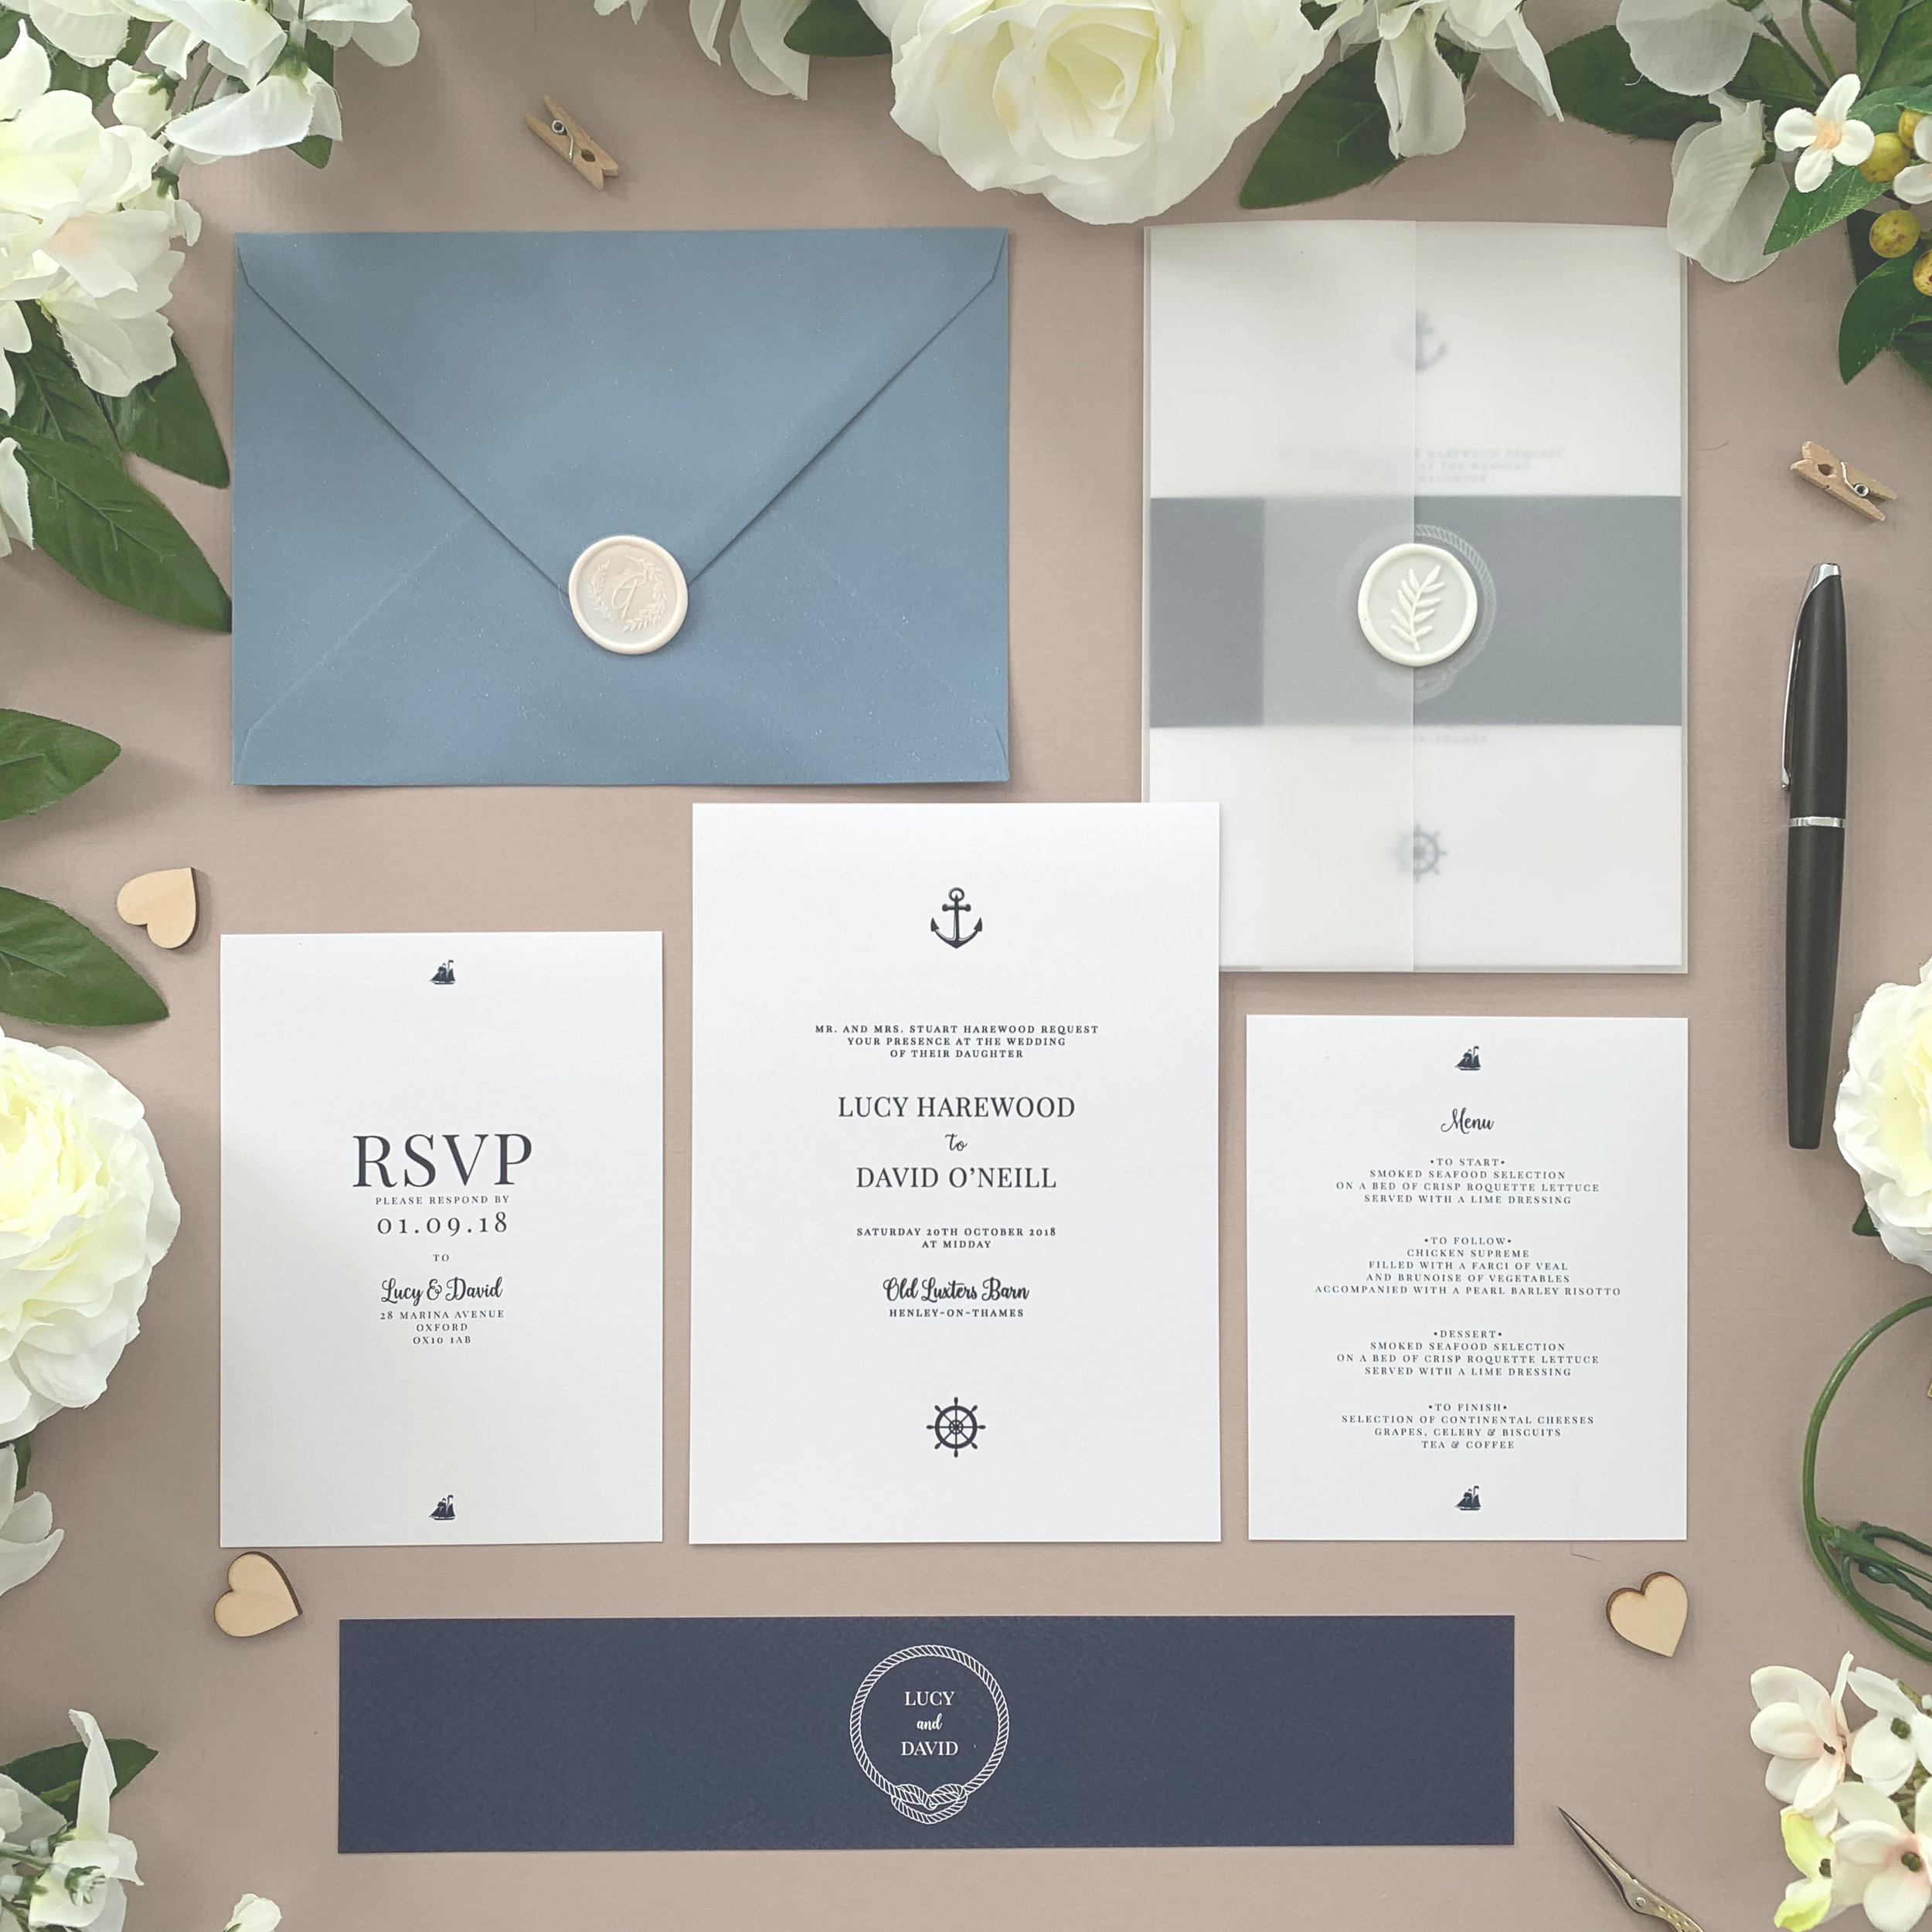 Canary Wharf - Iconic nautical imagery and a classical navy colour scheme make this classic wedding invitation suite from our Canary Wharf collection a beautiful option for your seaside-themed wedding.The classic invitation suite is our most popular configuration and hugely versatile. If you don't have much to say or want to keep things simple you can even just order the invitation card on its own, which is an ideal option for evening guests.Most couples opt for a suite of items for day guests which can then be bound, with a choice of a paper belly band, vellum jacket, sticker or wax seal to keep multiple cards beautifully neat and together.Coloured envelopes are available, in addition to printing of guest names and envelopes to make the process even easier.